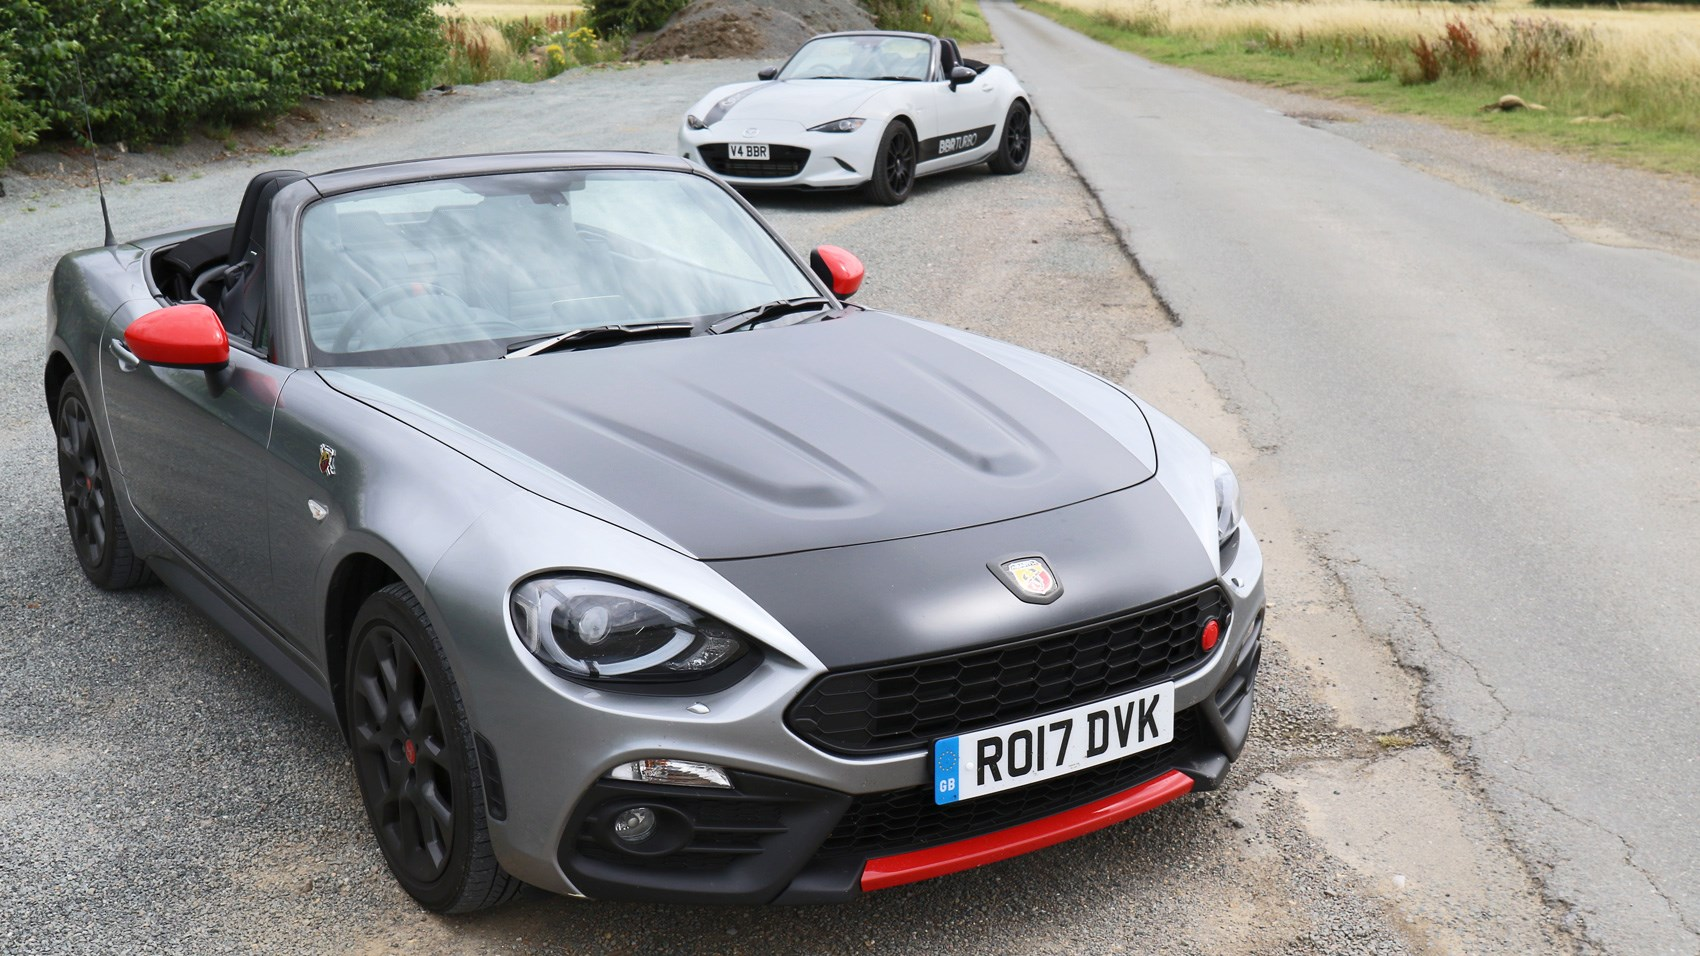 abarth 124 spider vs mazda mx 5 bbr twin test review by car magazine. Black Bedroom Furniture Sets. Home Design Ideas